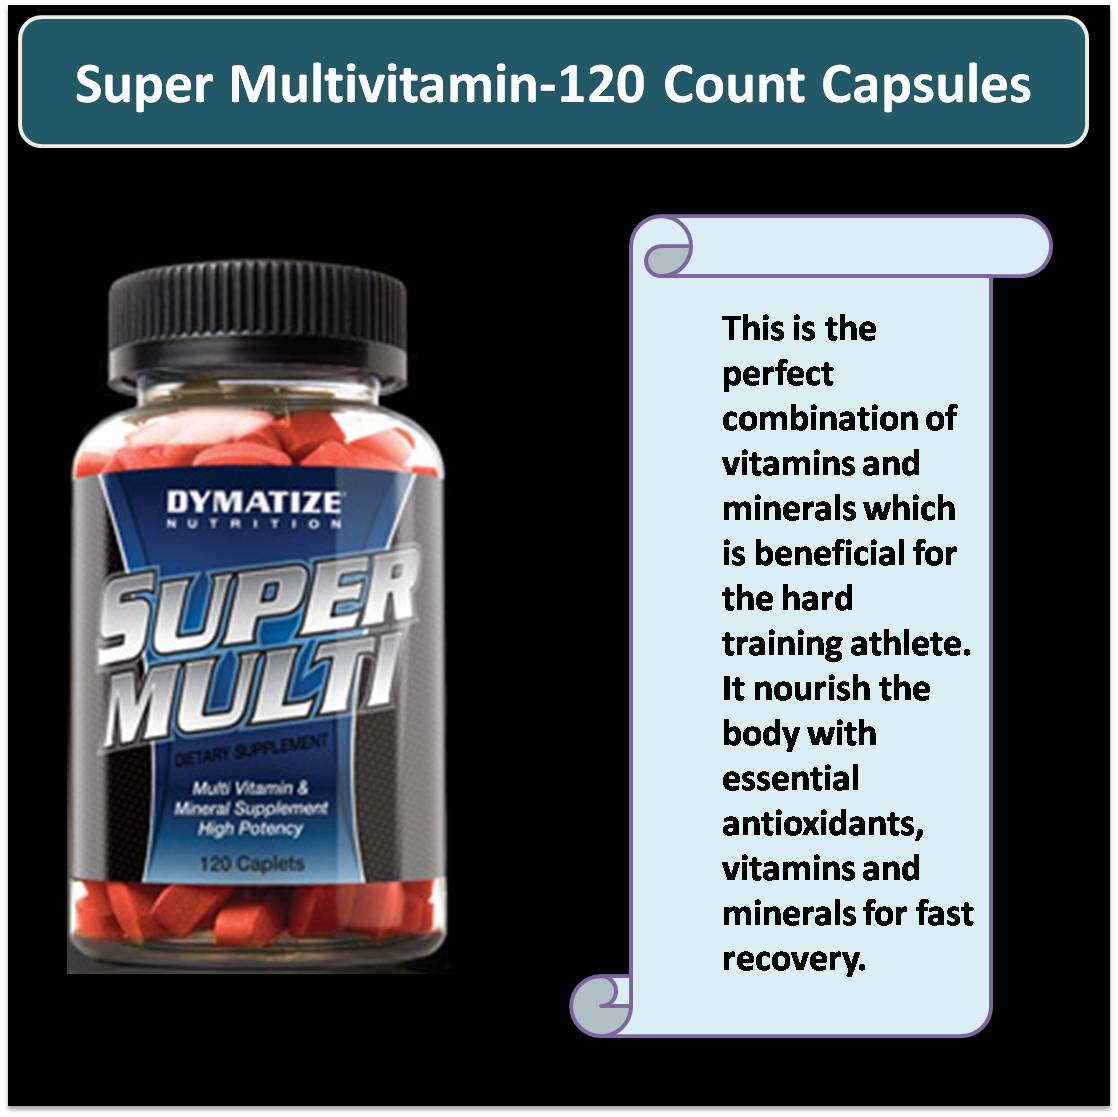 Super Multivitamin-120 Count Capsules